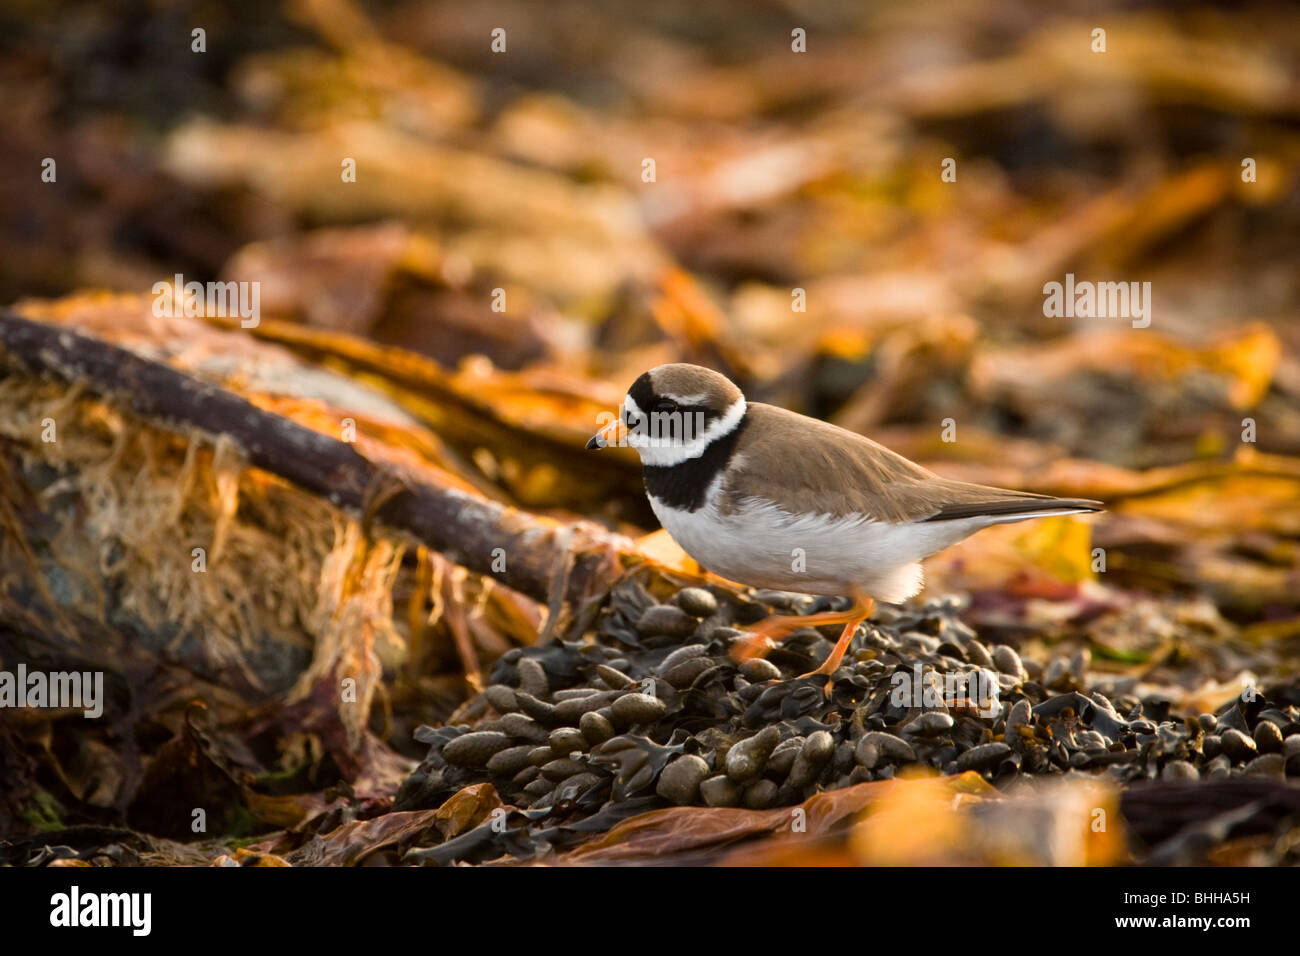 A Ringed Plover looking for food, Norway. - Stock Image